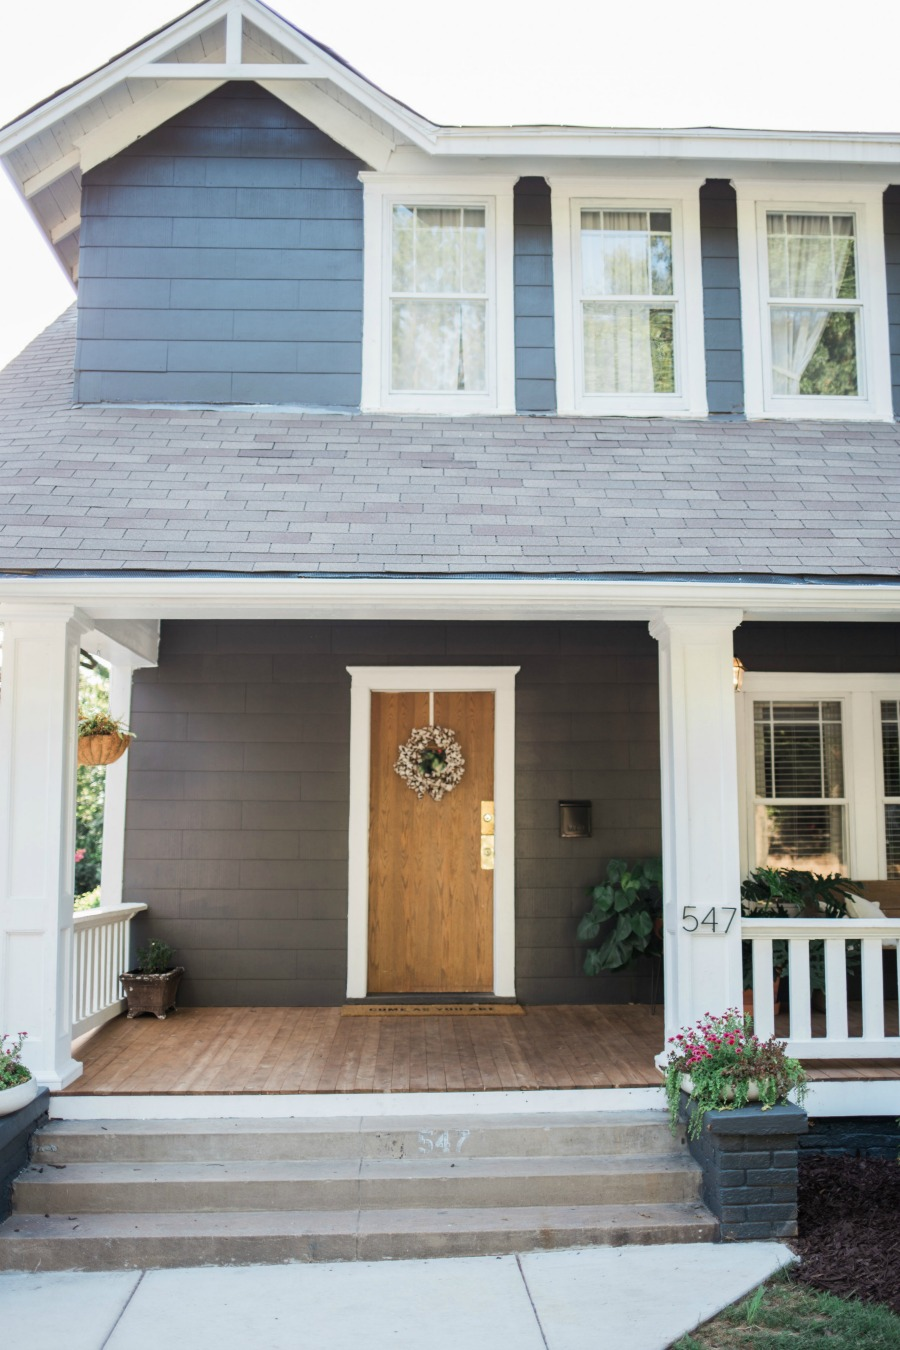 Our 1920 Sears Kit House Before & After Tour // Part 1 — Emily Netz